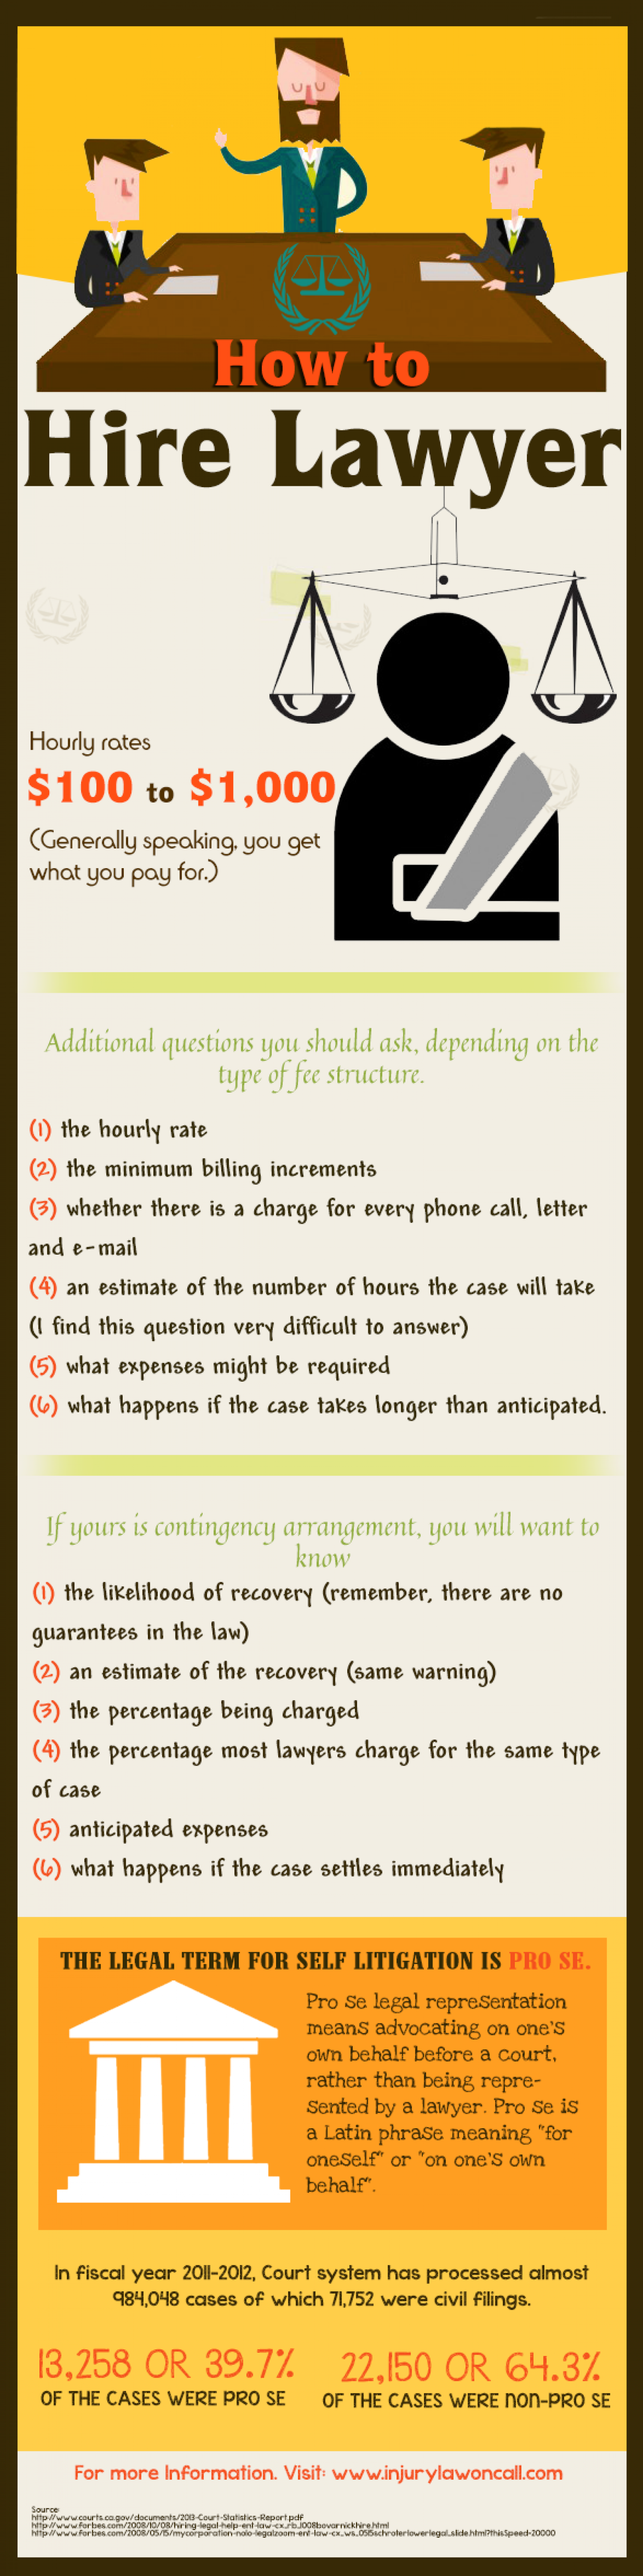 How to Hire Lawyer: 6 Steps Infographic